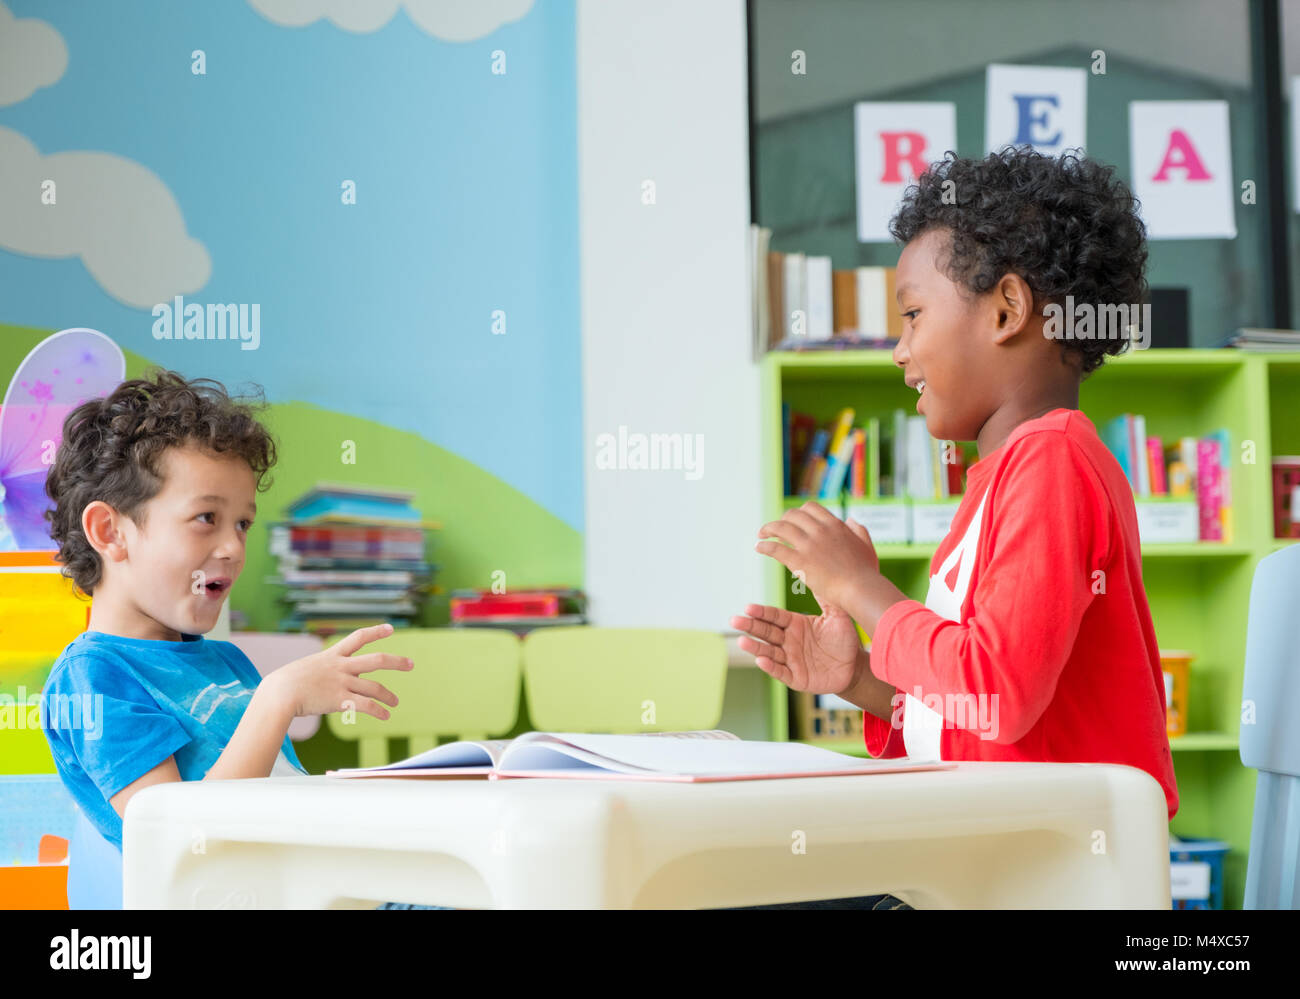 Two Boy Kid Sit On Table And Coloring In Book Preschool LibraryKindergarten School Education Concept